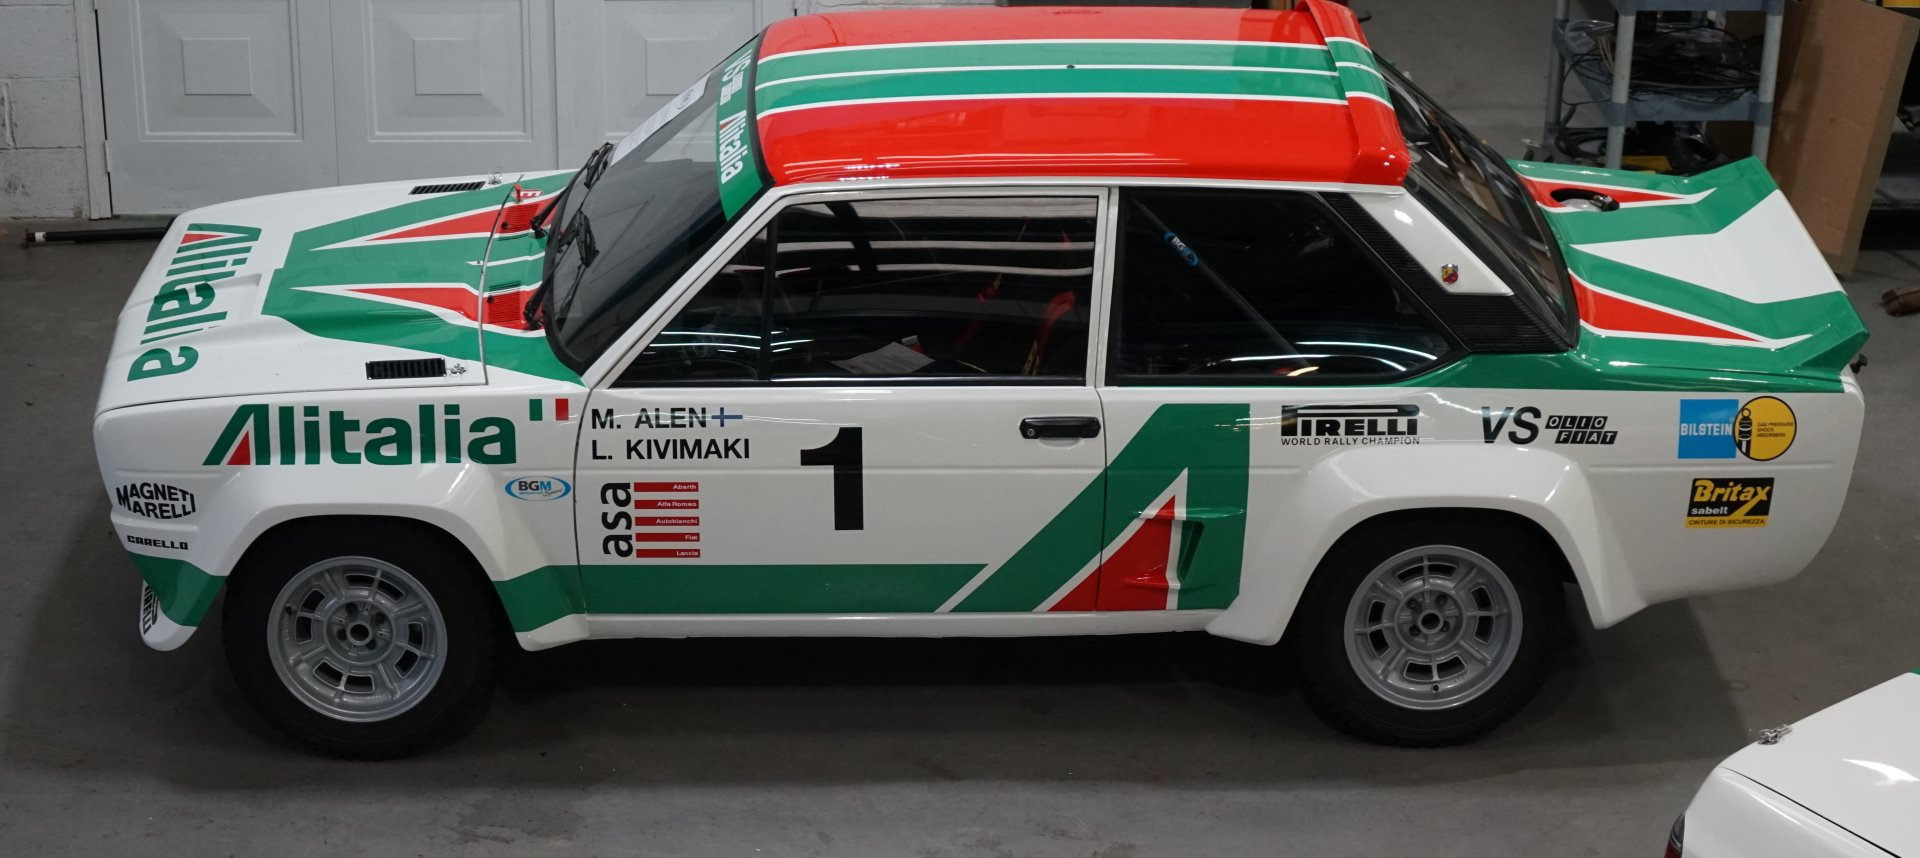 fiat-131-abarth-grp-4-rally-car-34